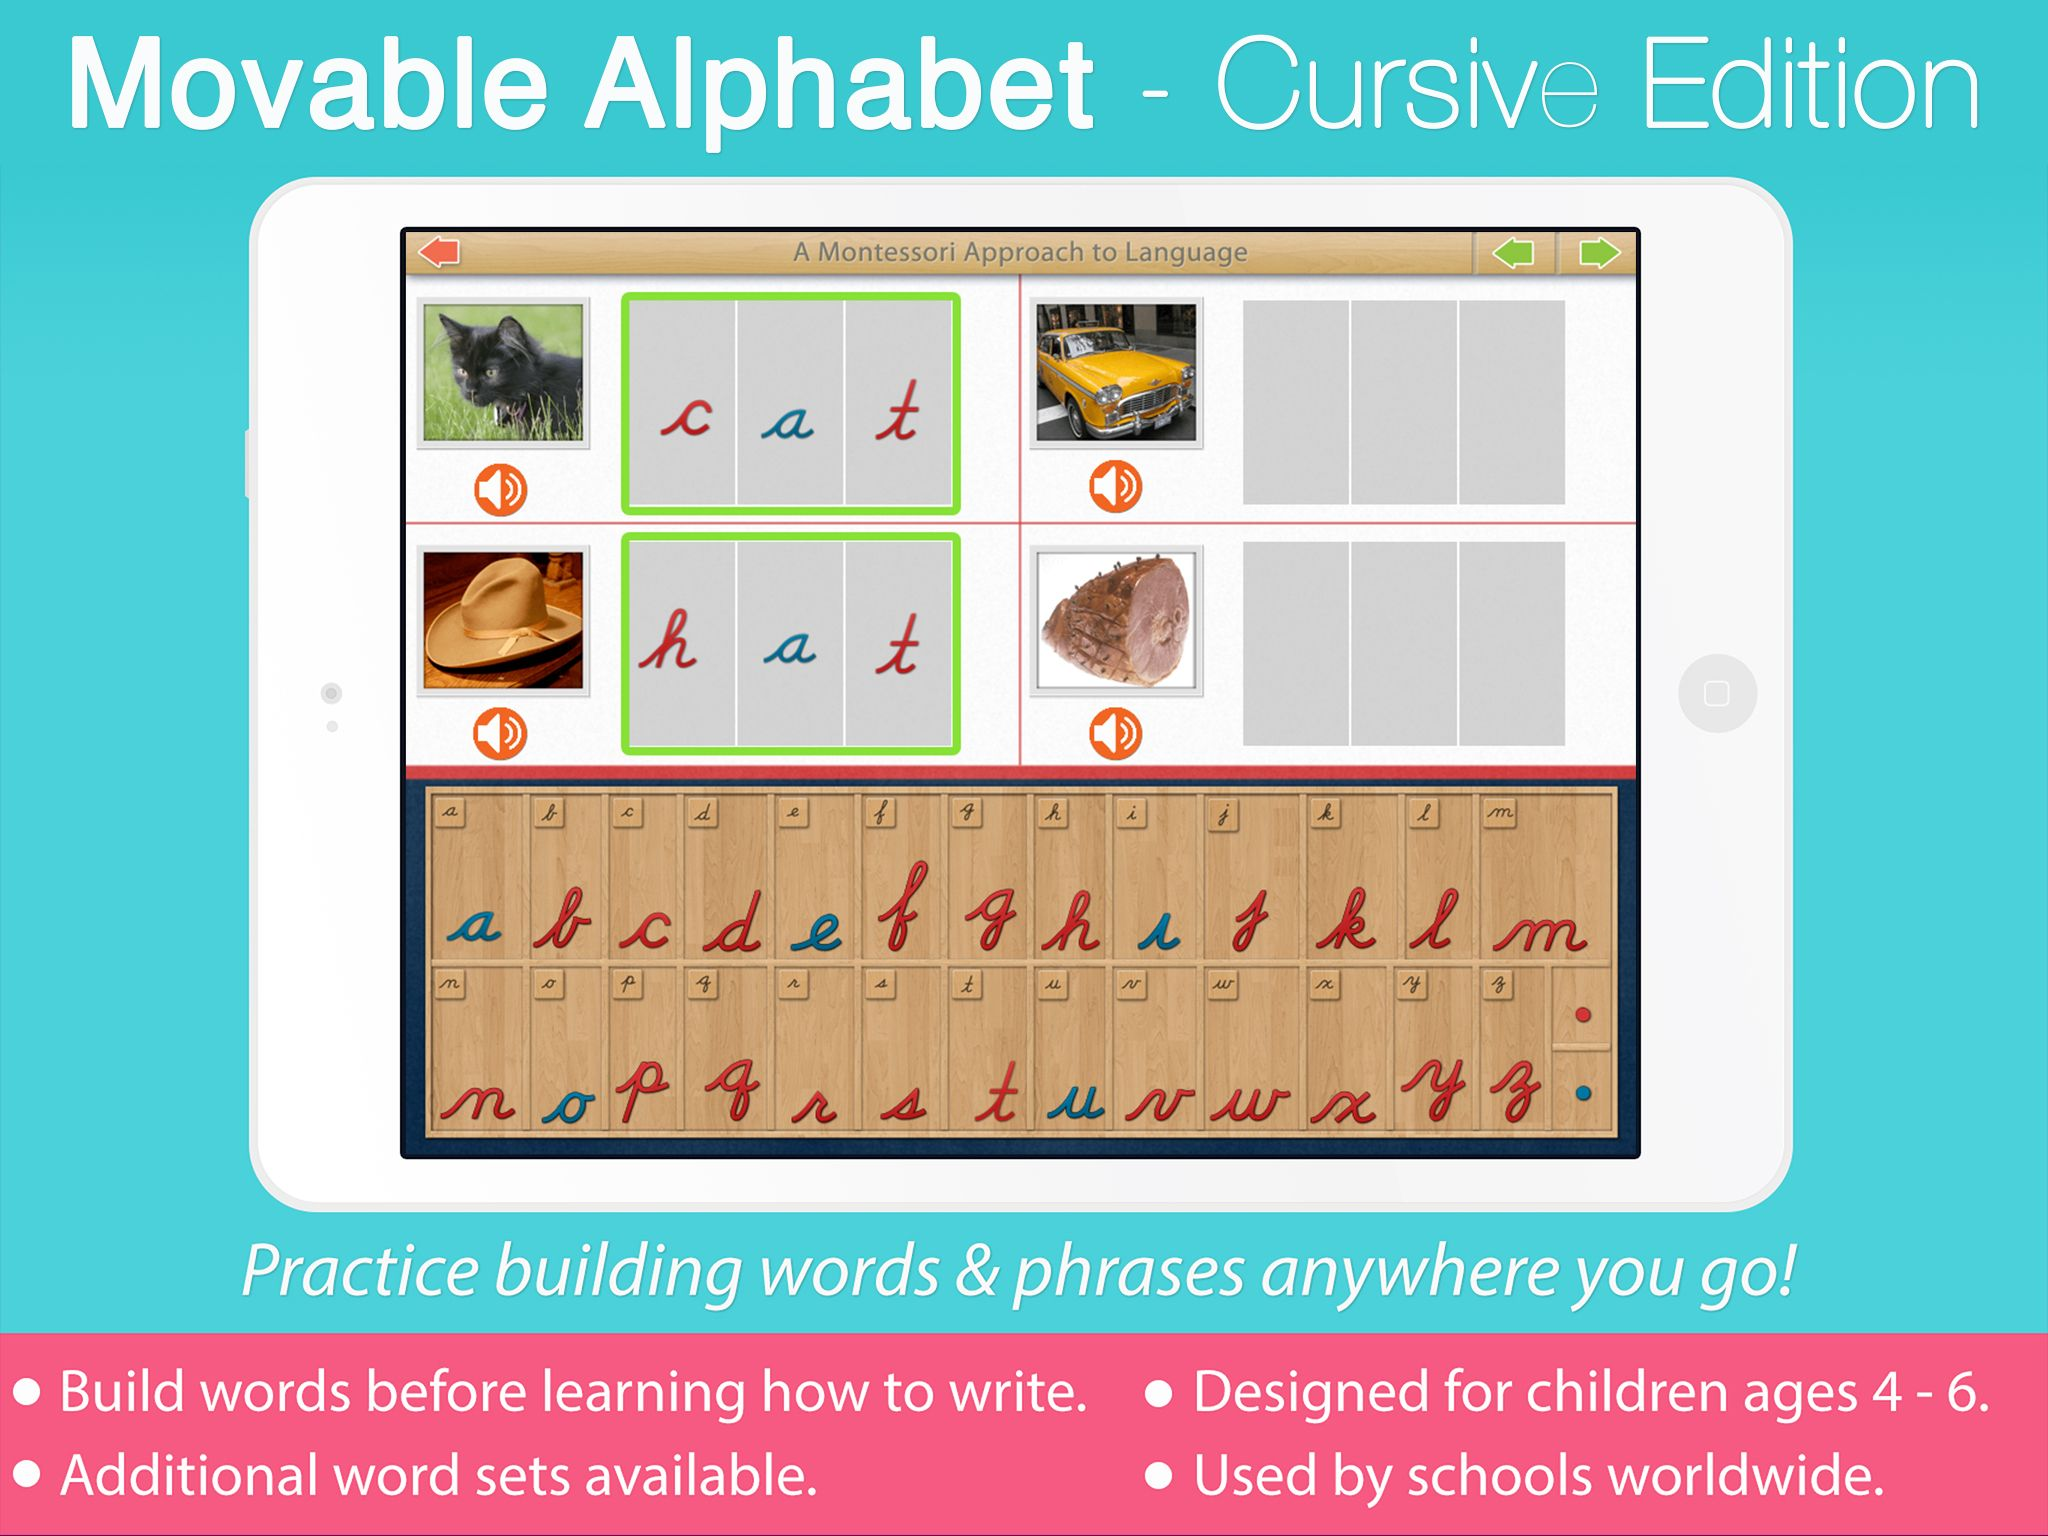 Practice building words in CURSIVE with the Movable